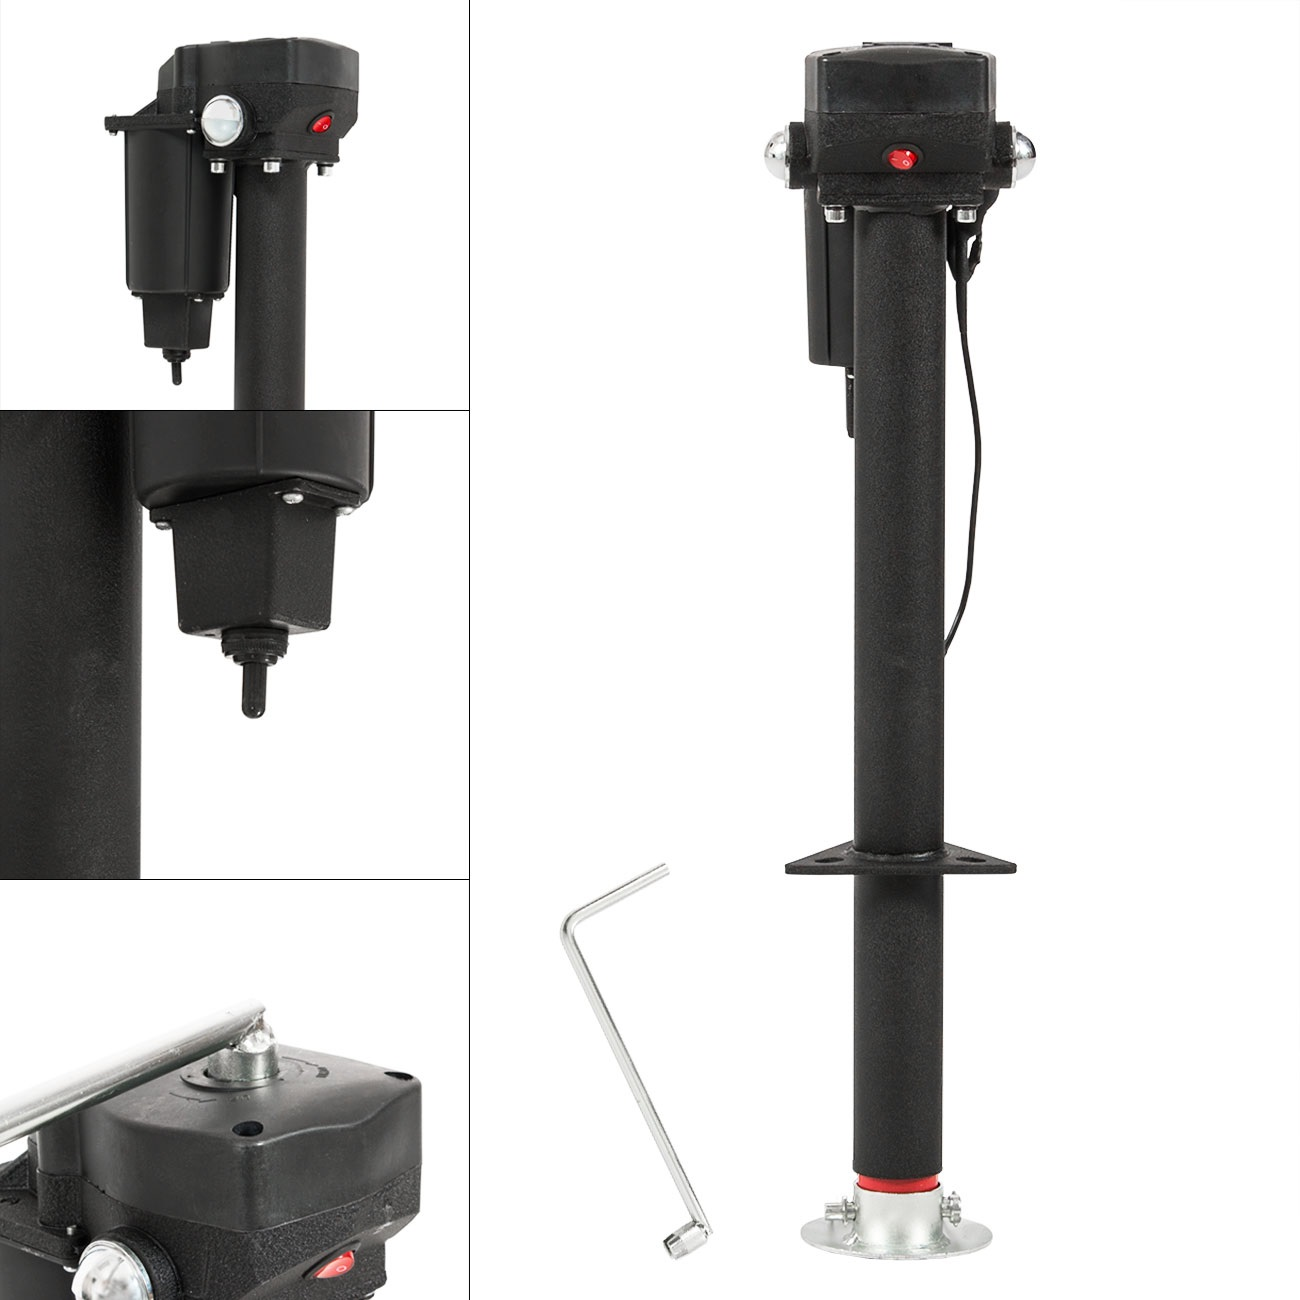 Click here to buy Arksen 12-Volt, Electric Power Tongue, A-Frame RV Trailer Jack, Adjustable Height 3500 LB by ARKSEN.